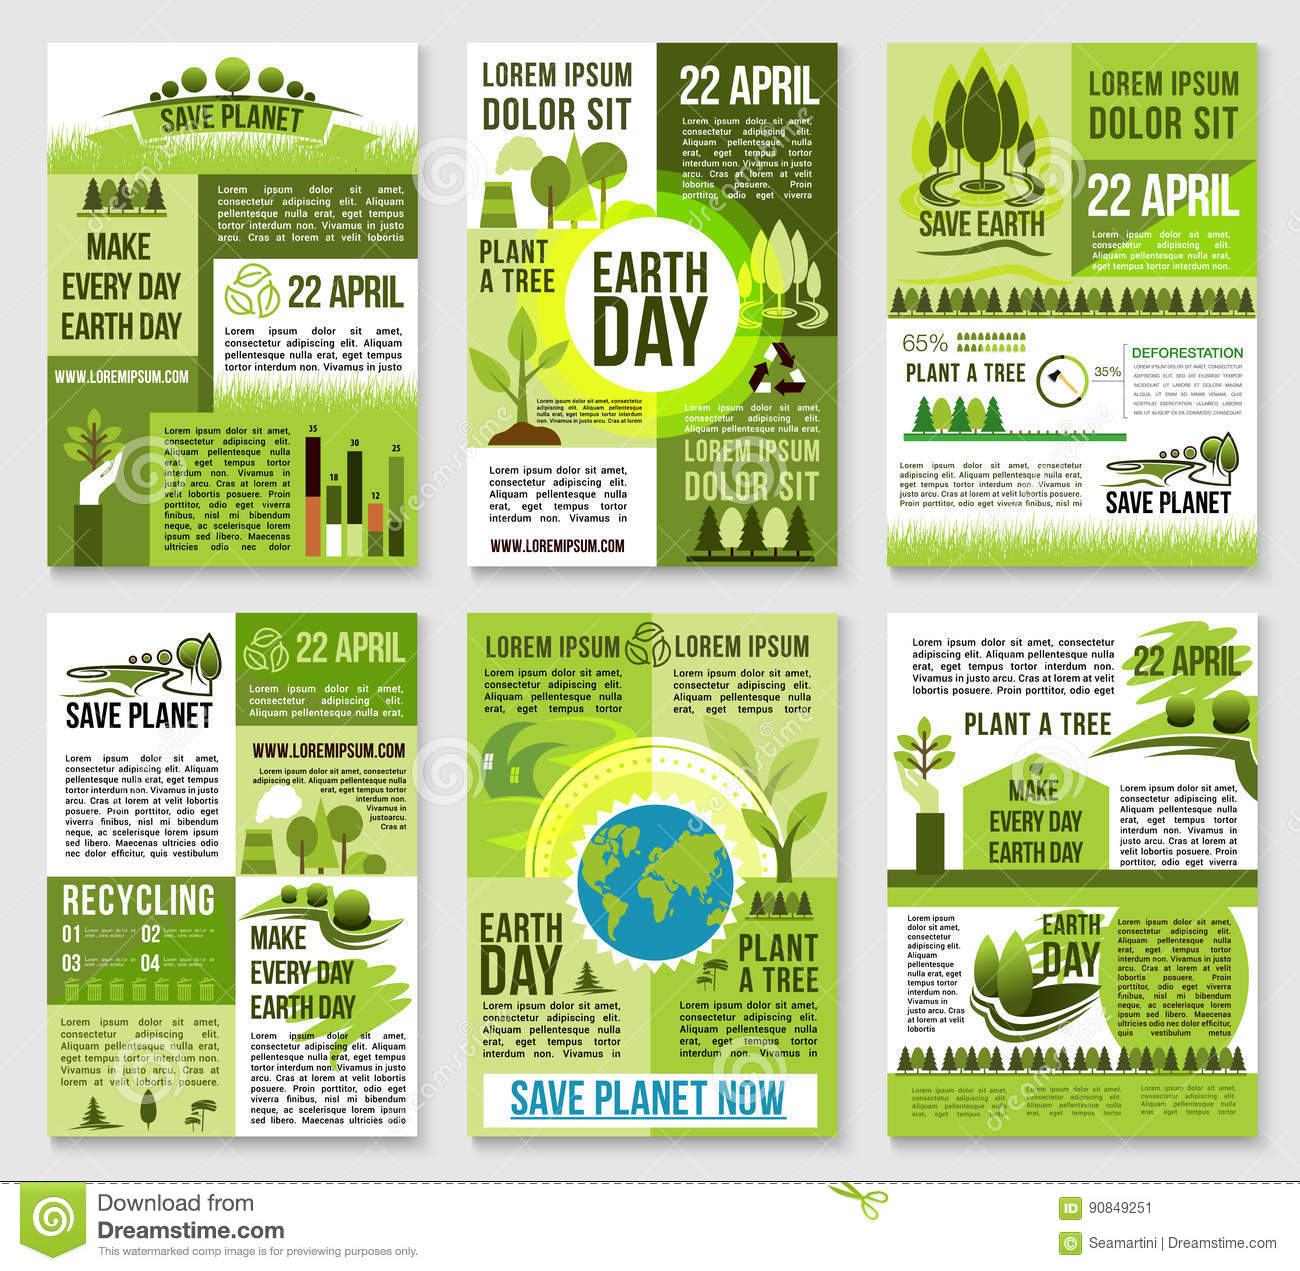 Poster design on save earth - Earth Day Poster Template For Ecology Design